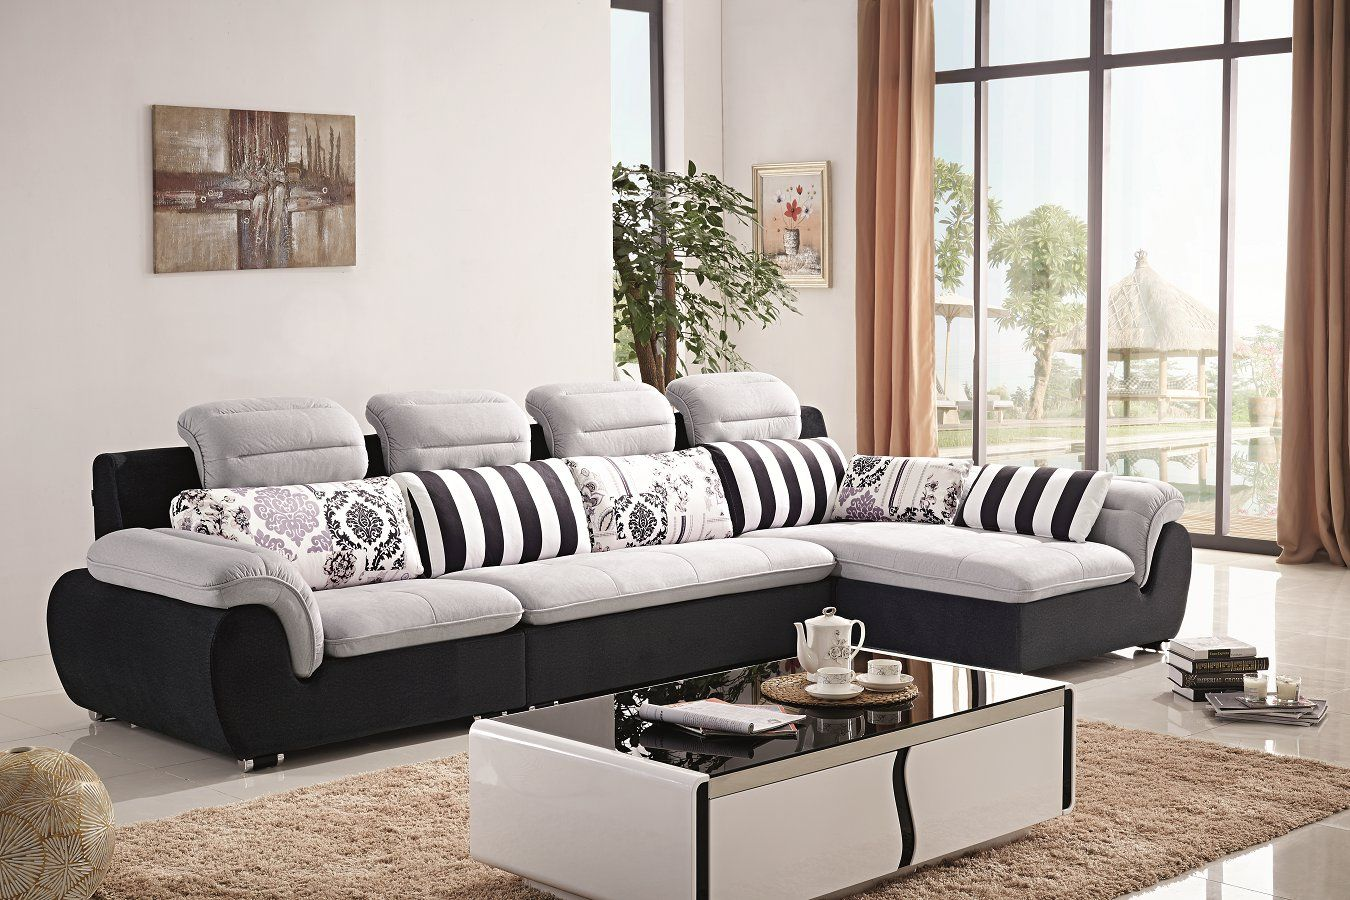 Charmant In Just Five Minutes, Define The Best Sofa Style For Your Living Space